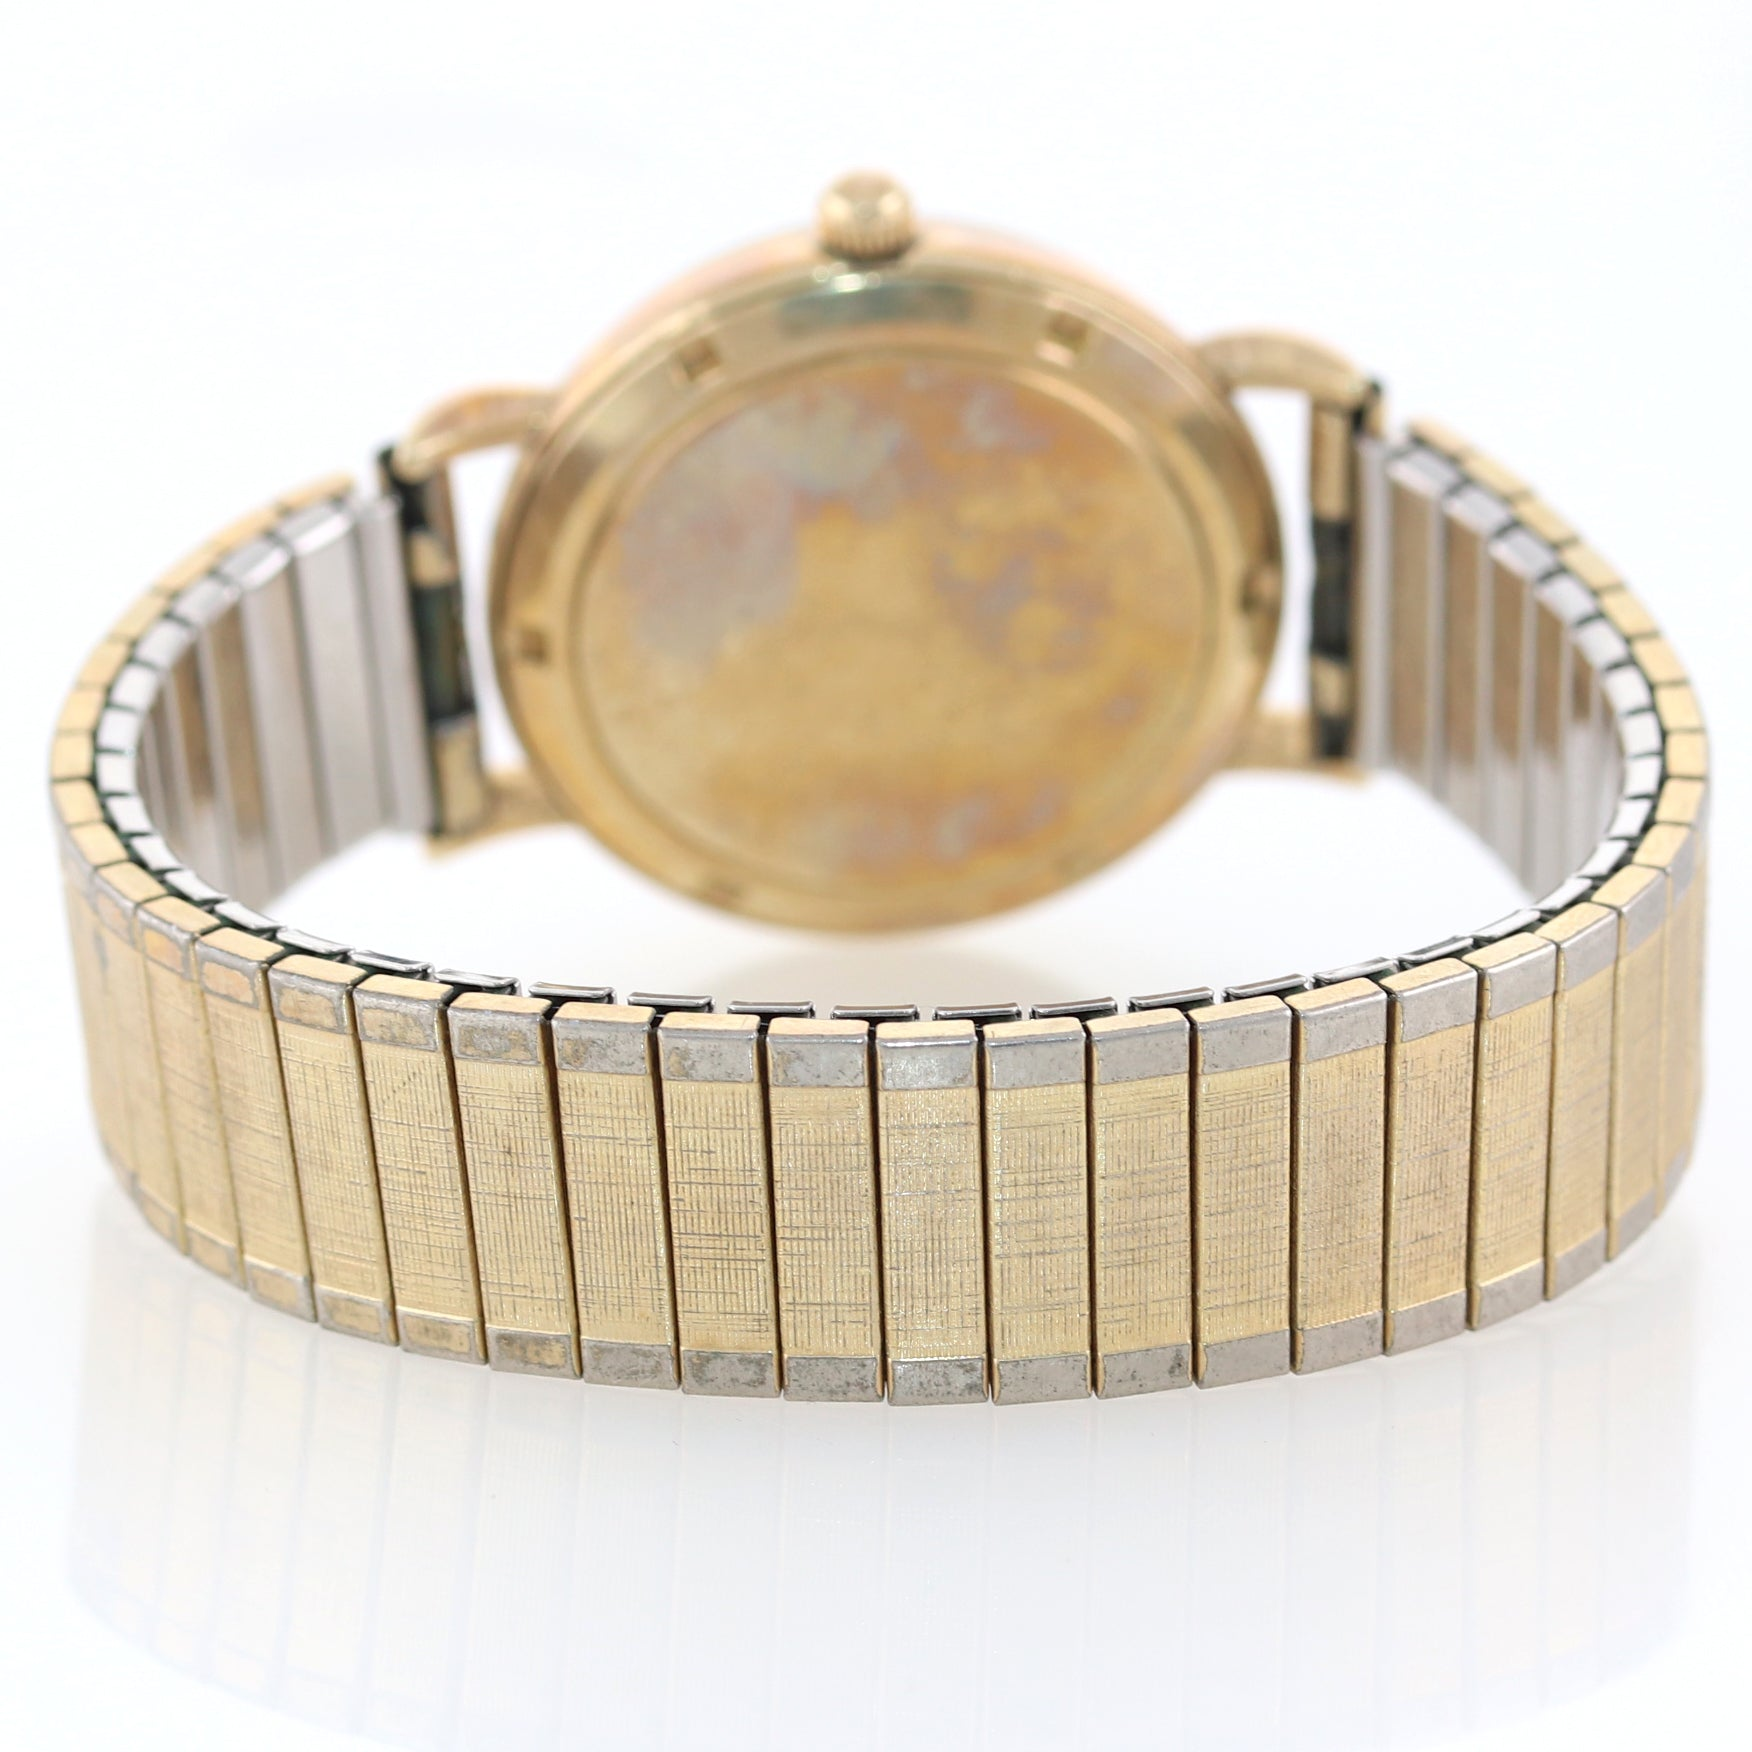 VTG Le Coultre 14k Yellow Gold Mystery Dial Automatic Bumper Movement Watch